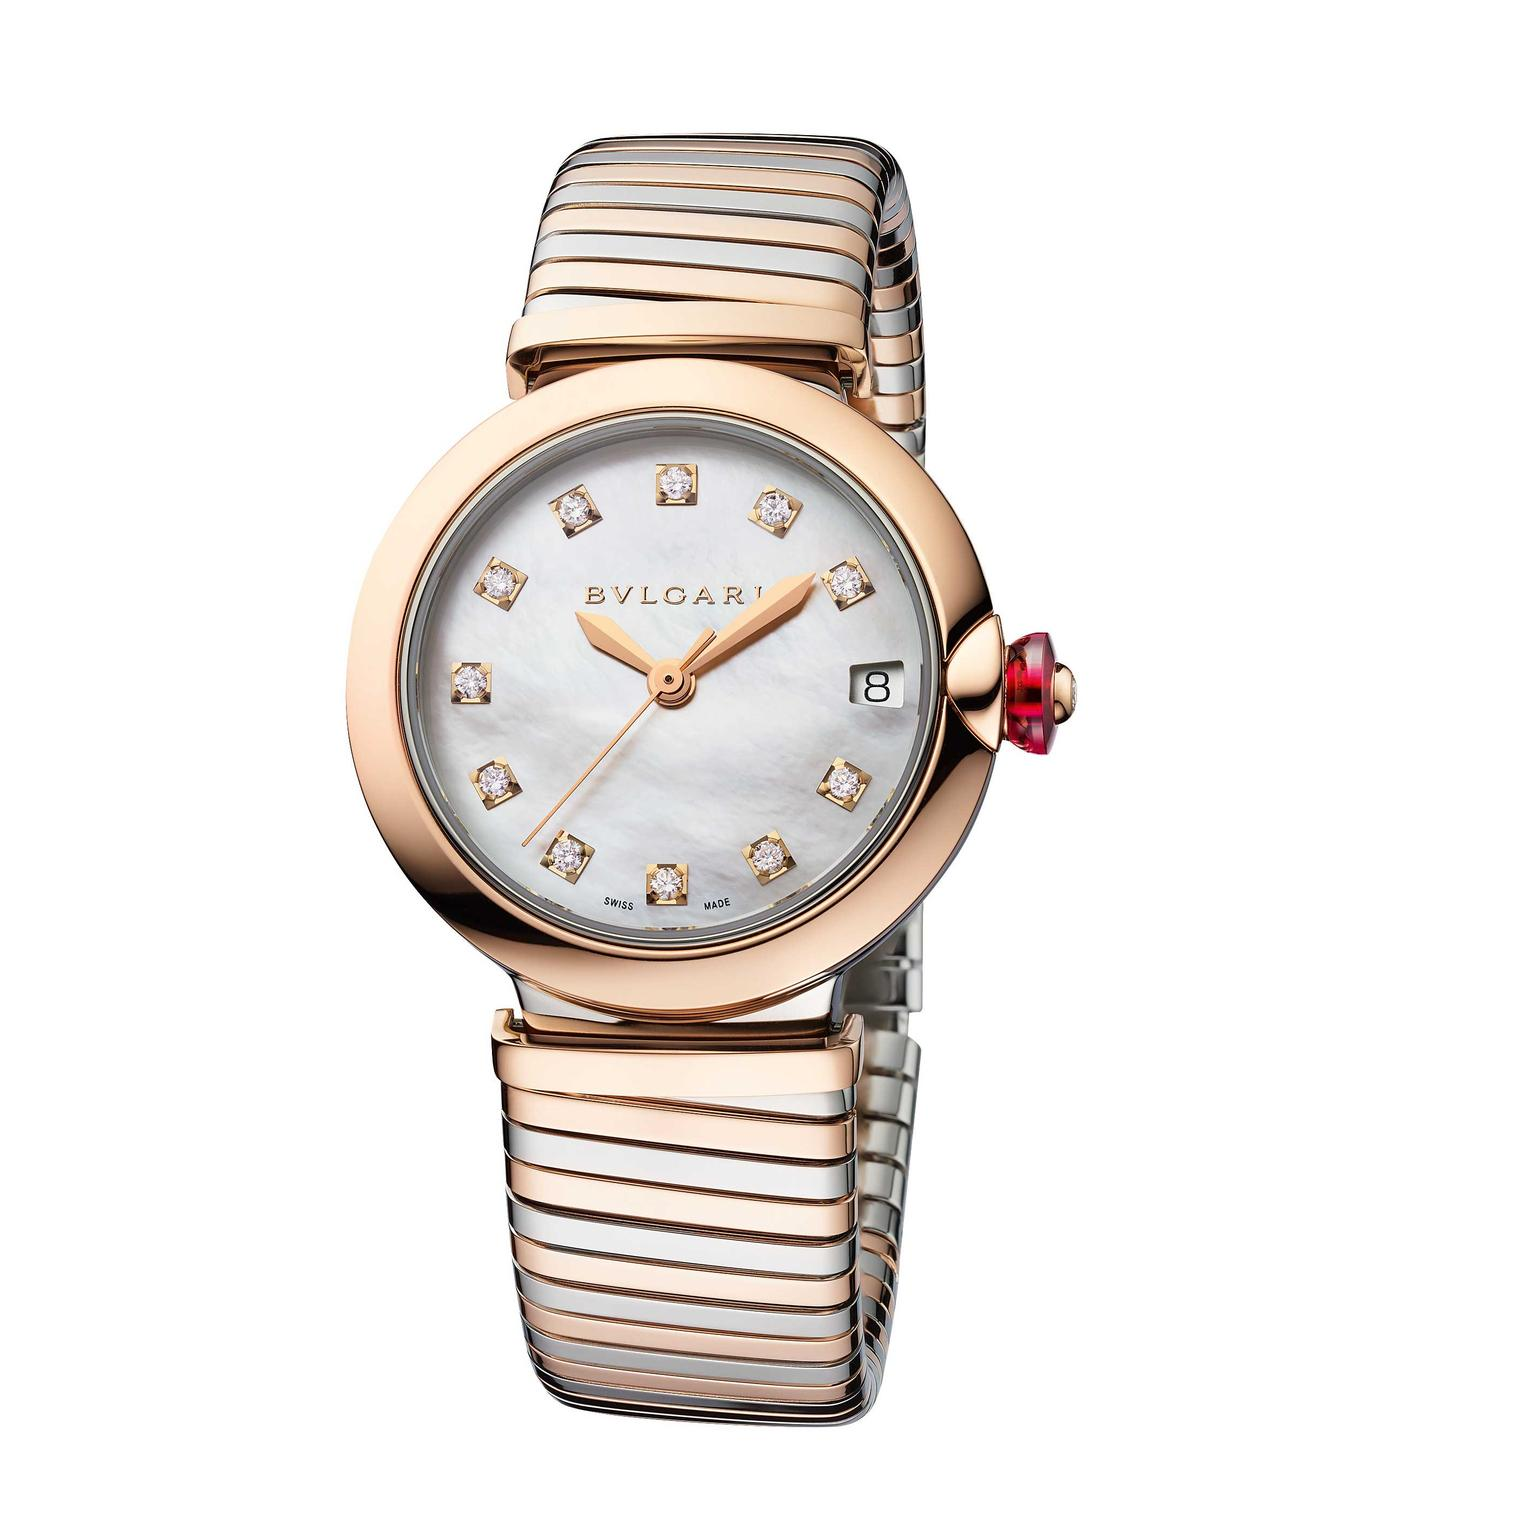 Bulgari Lvcea Tubogas 33mm stainless steel and rose gold watch  Price €10600